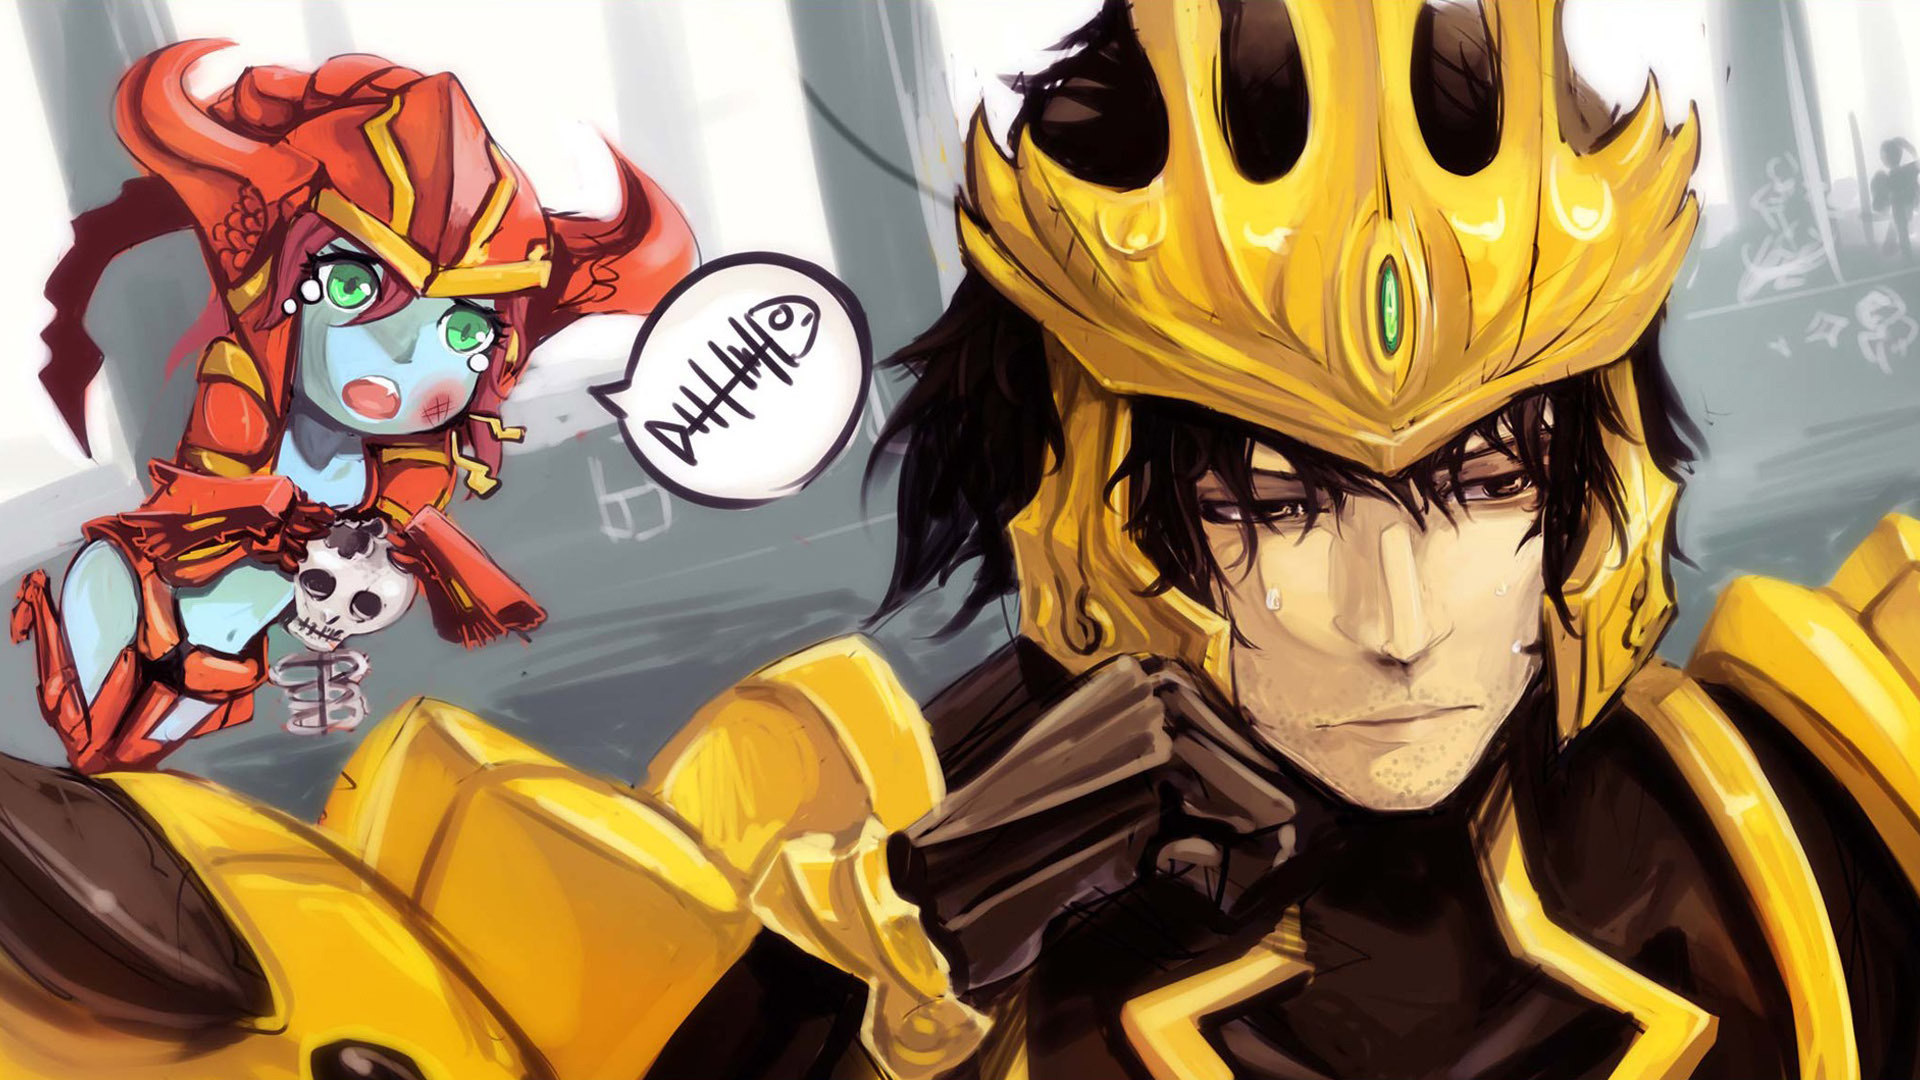 Free Download Anime League Of Legends Anime Hd Wallpaper 1920x1080